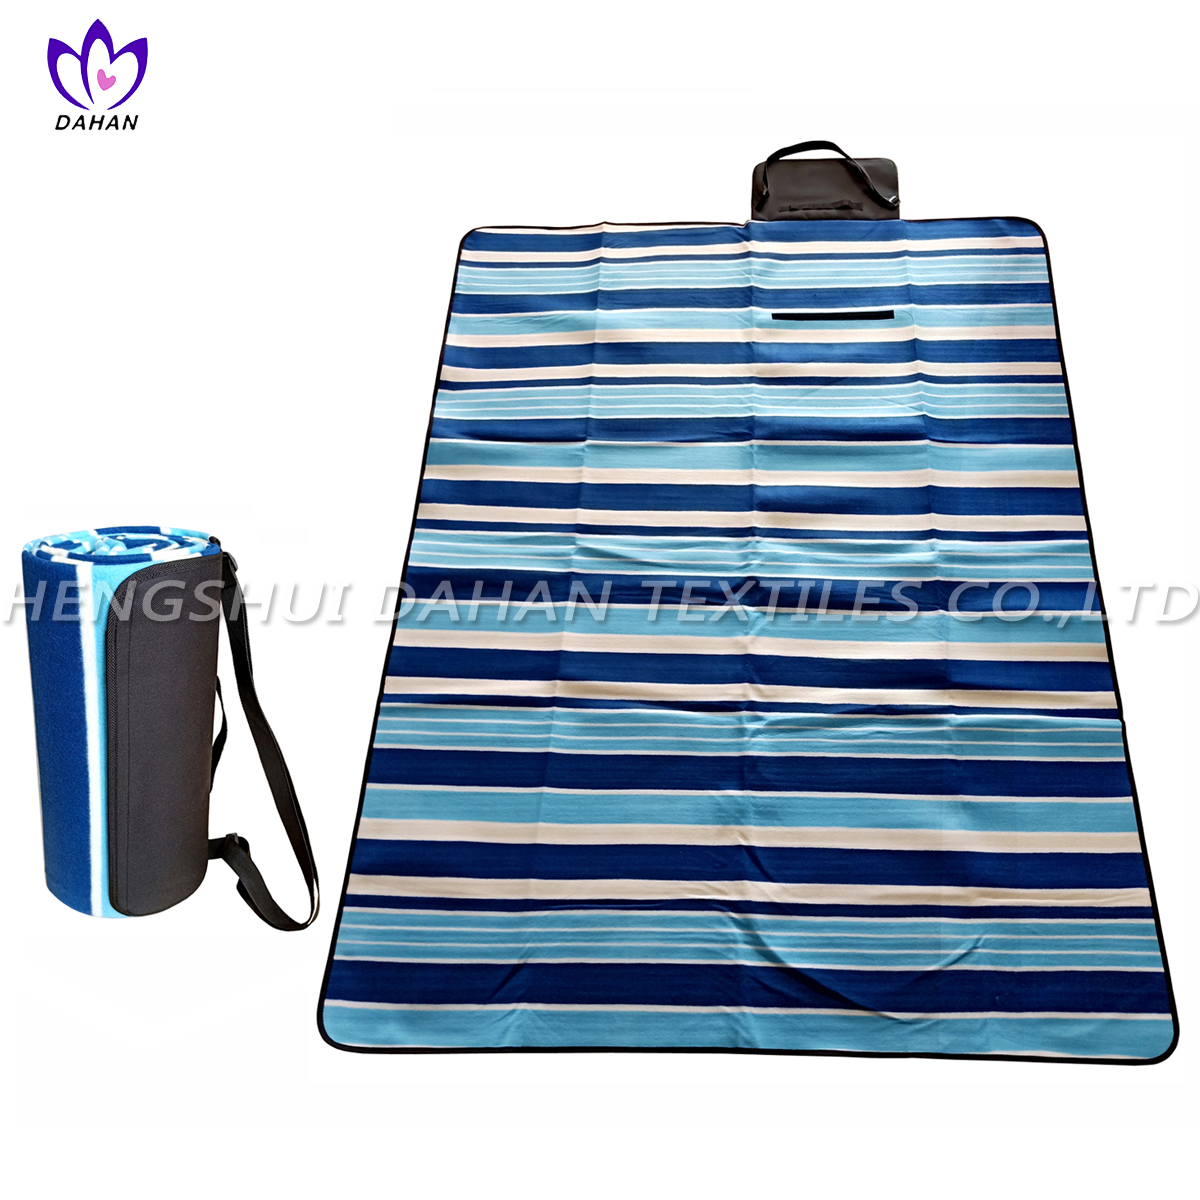 Picnic blanket waterproof picnic mat with printing.PM20